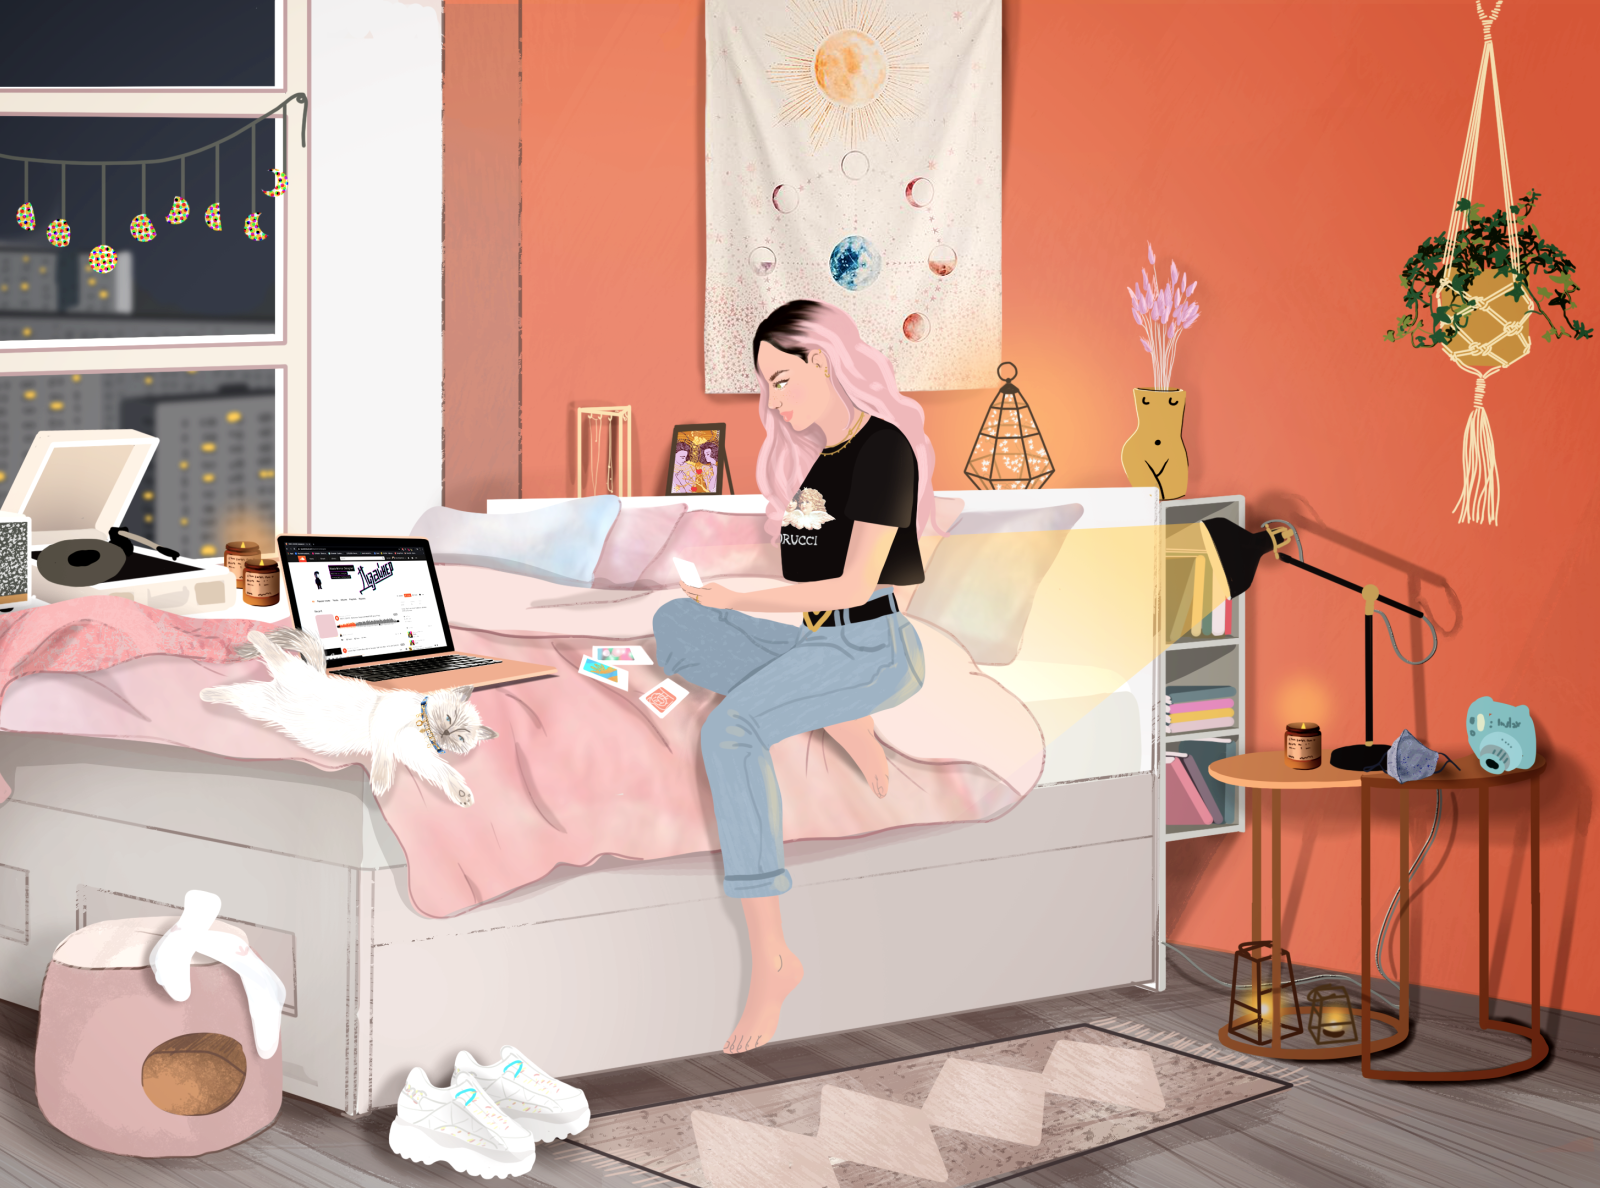 Cozy Room Illustration By Vera Weightless On Dribbble